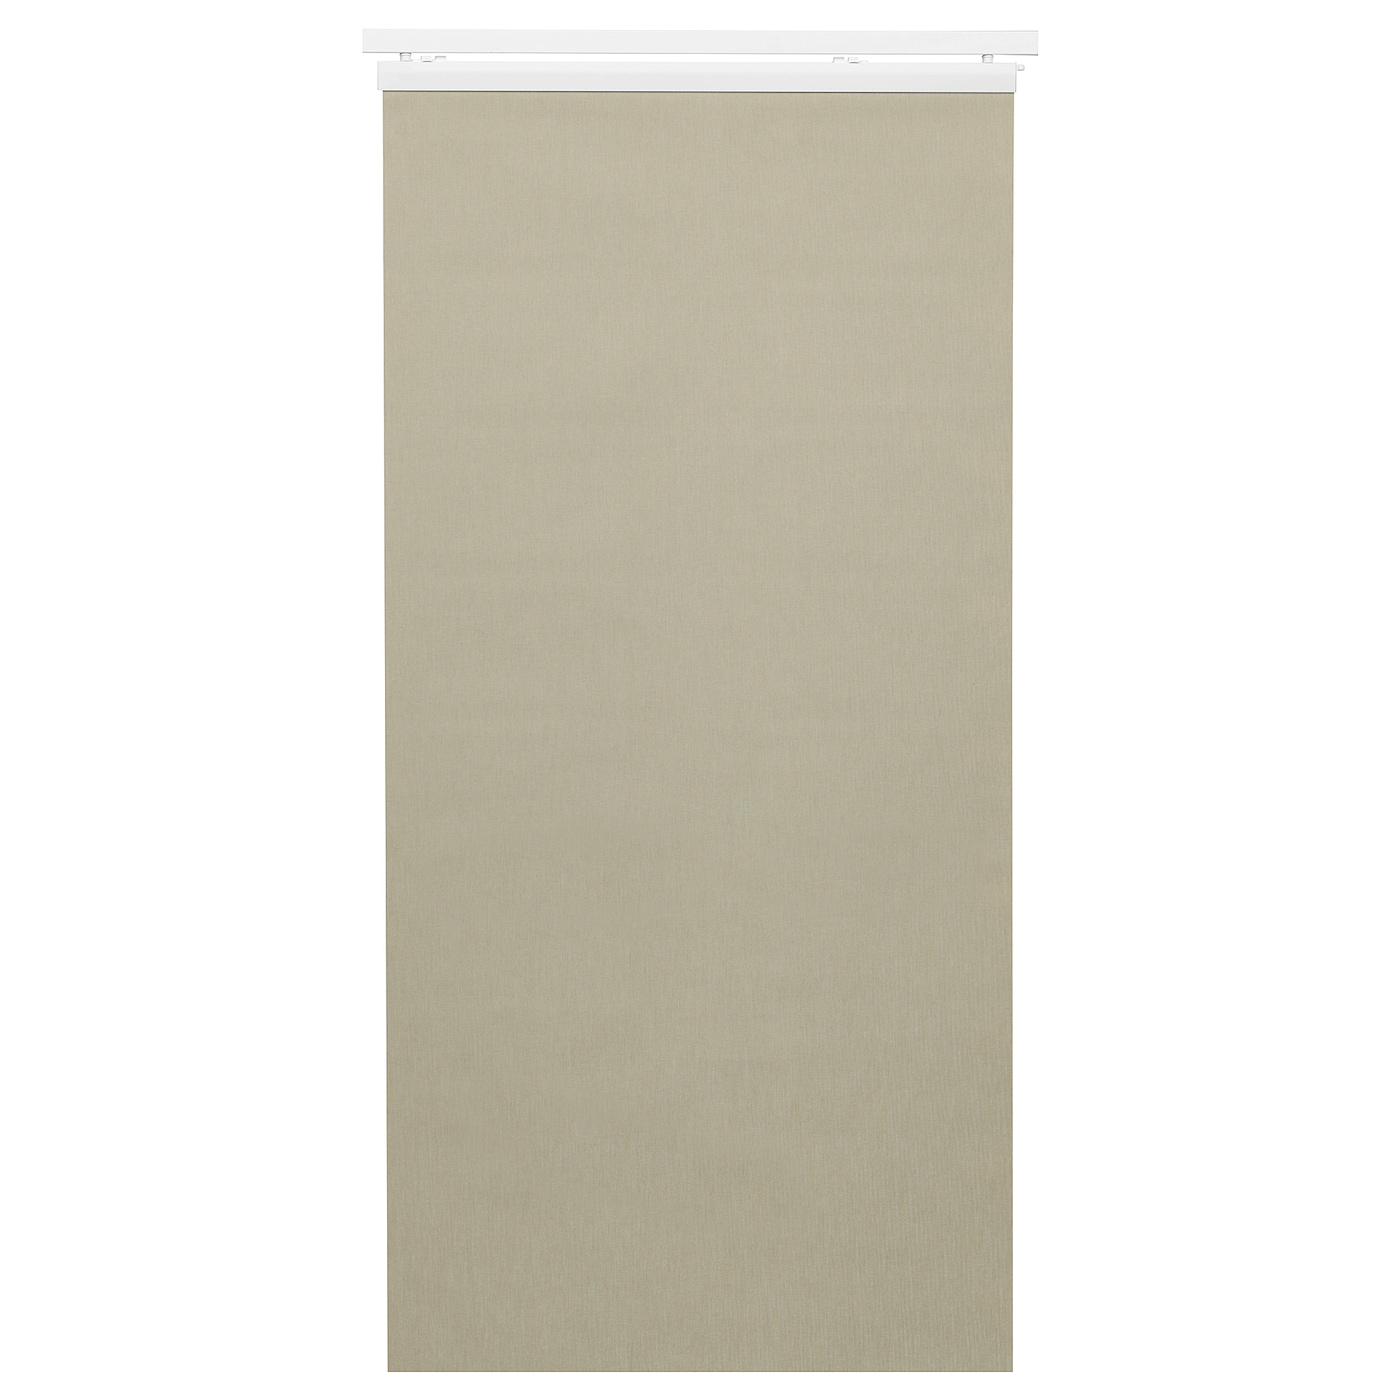 anno tupplur panel curtain beige 60 x 300 cm ikea. Black Bedroom Furniture Sets. Home Design Ideas